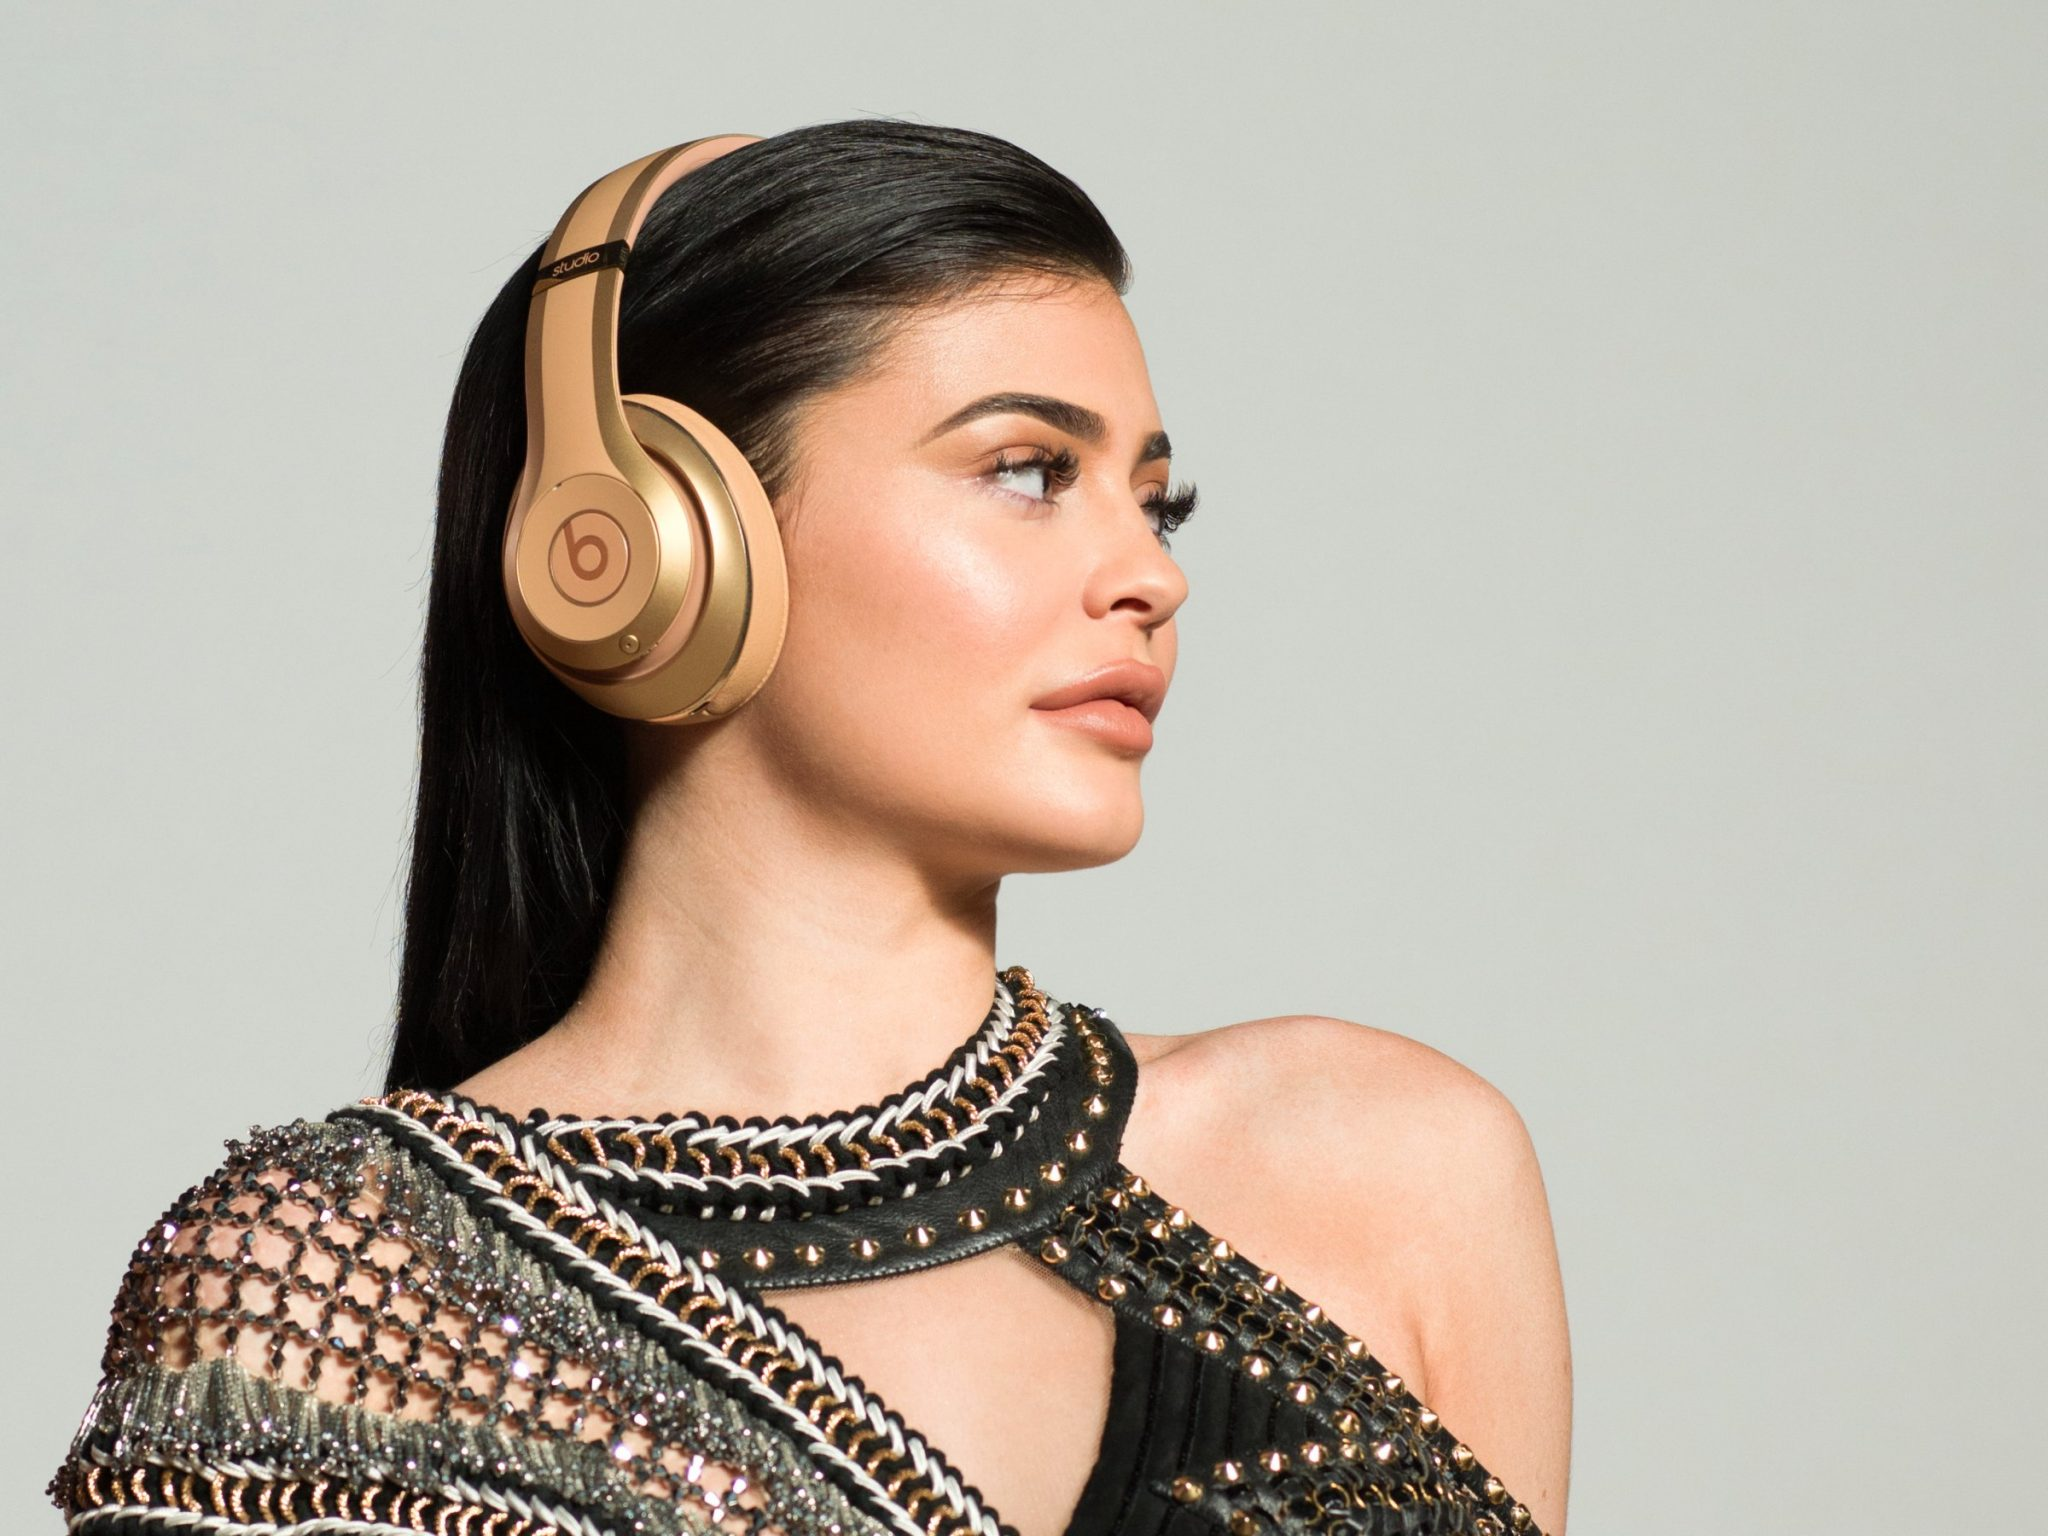 kylie jenner Kylie Jenner and new heavenly limited edition Beats Headphones bts2